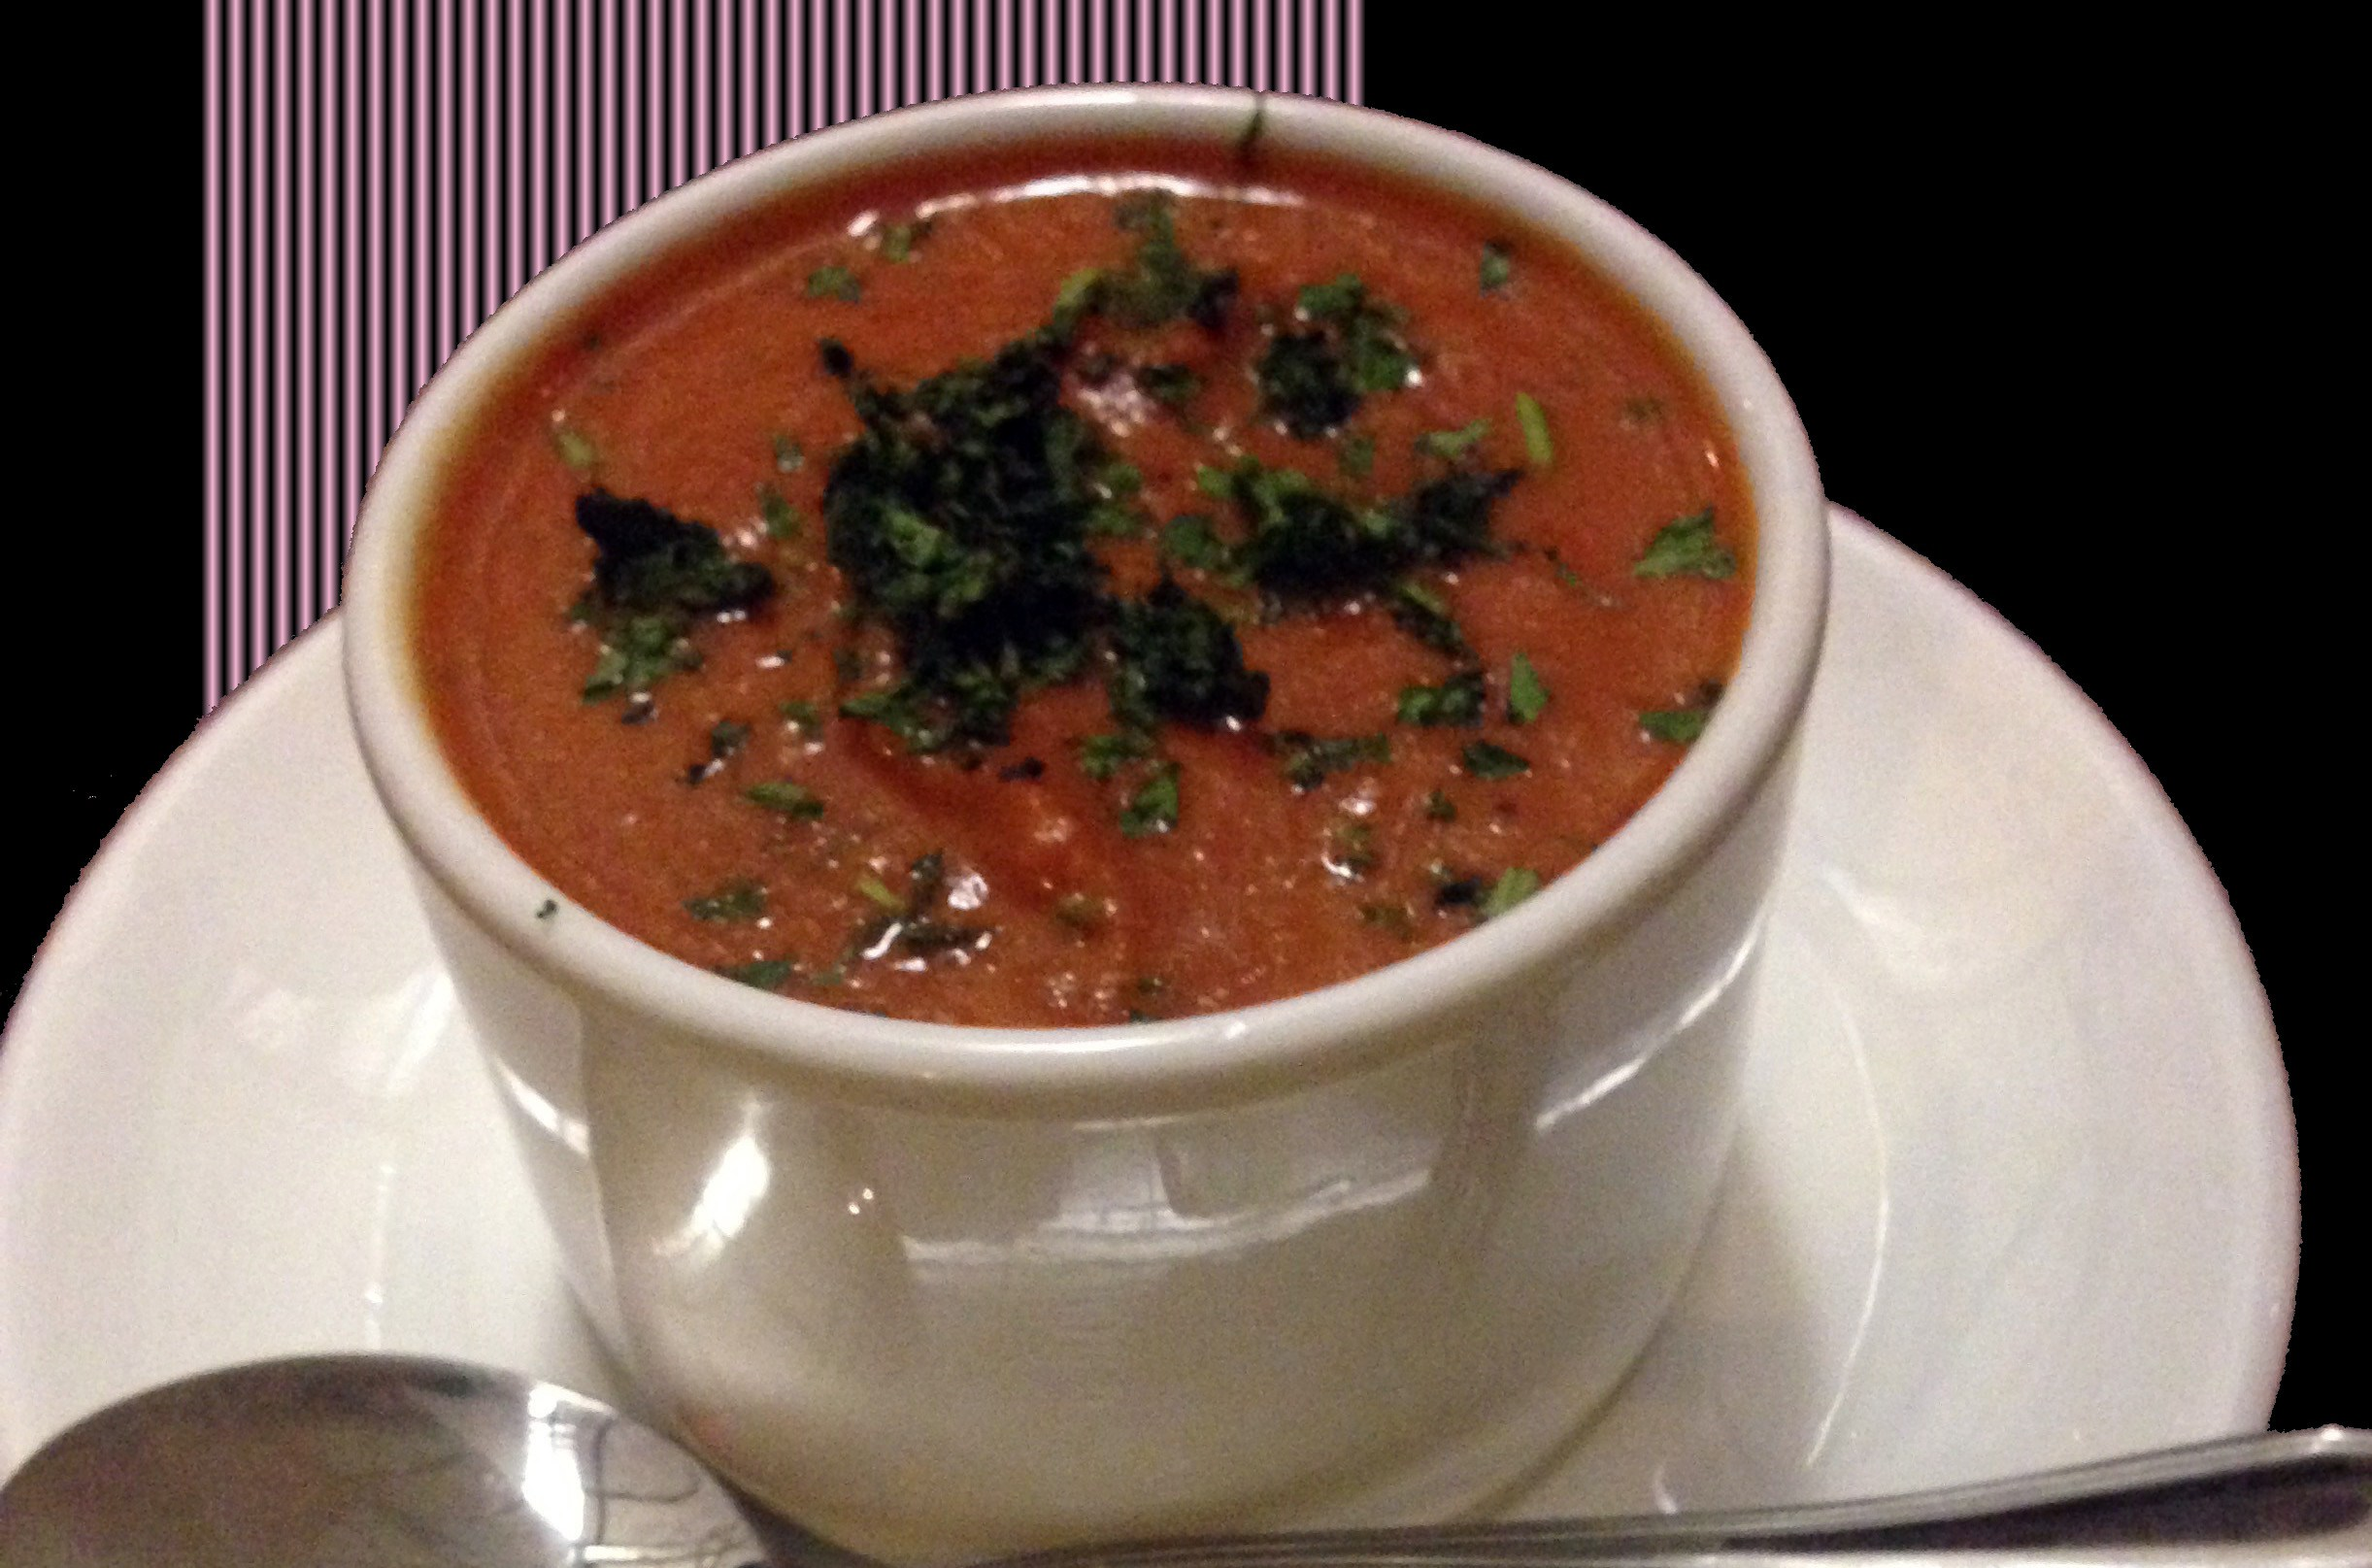 recipe i love: roasted tomato basil soup from the barefoot